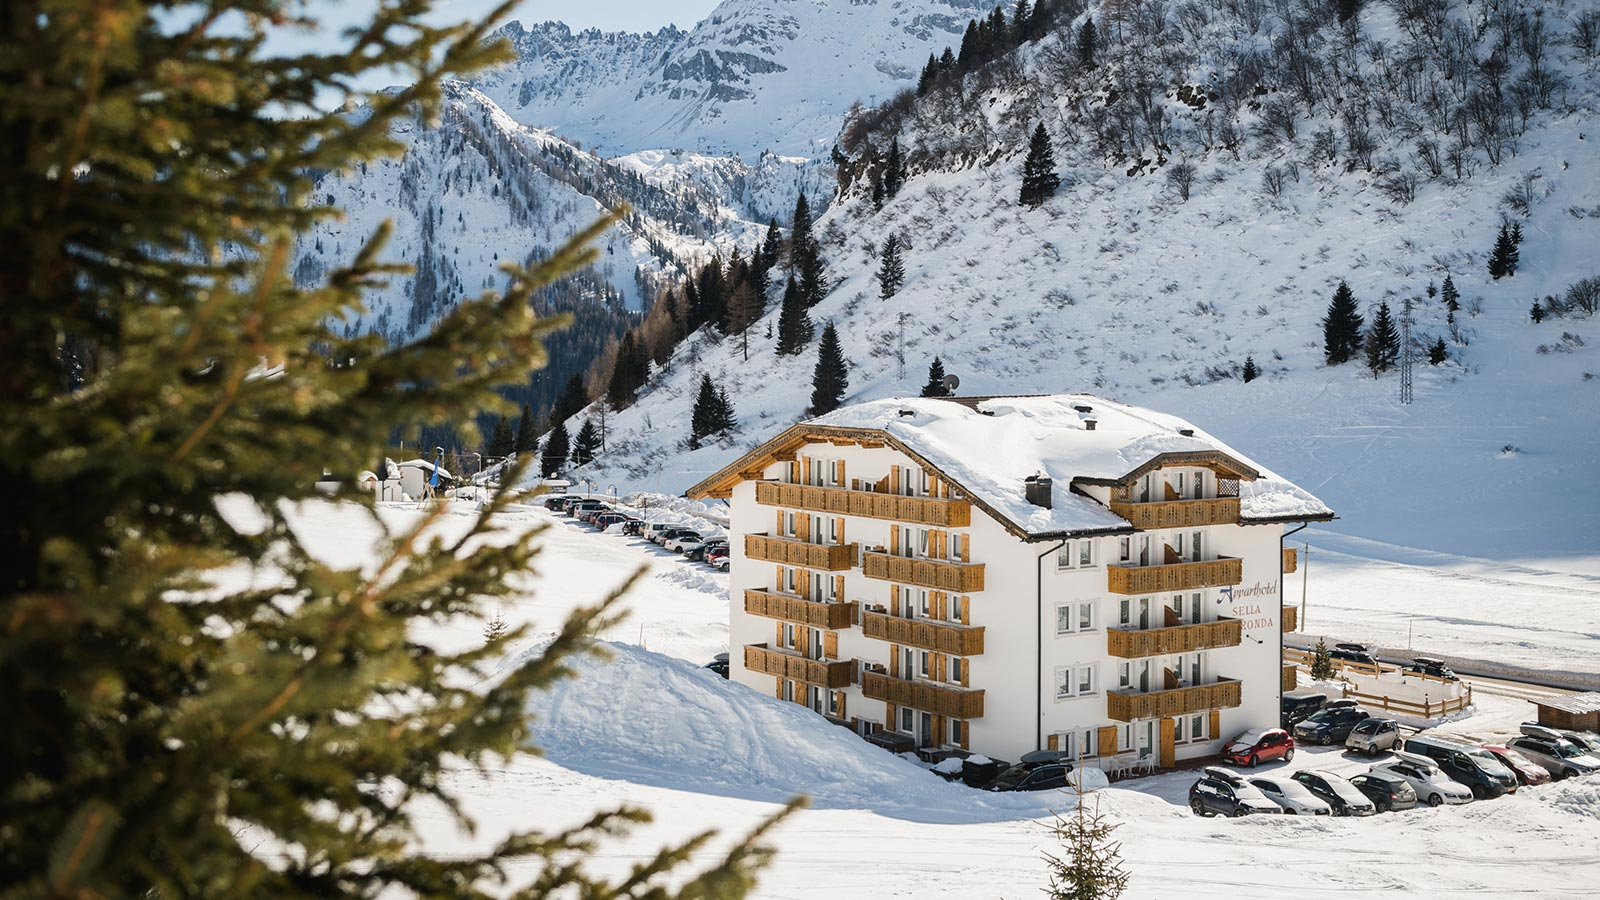 Unser Apparthotel am Passo Campolongo im Winter